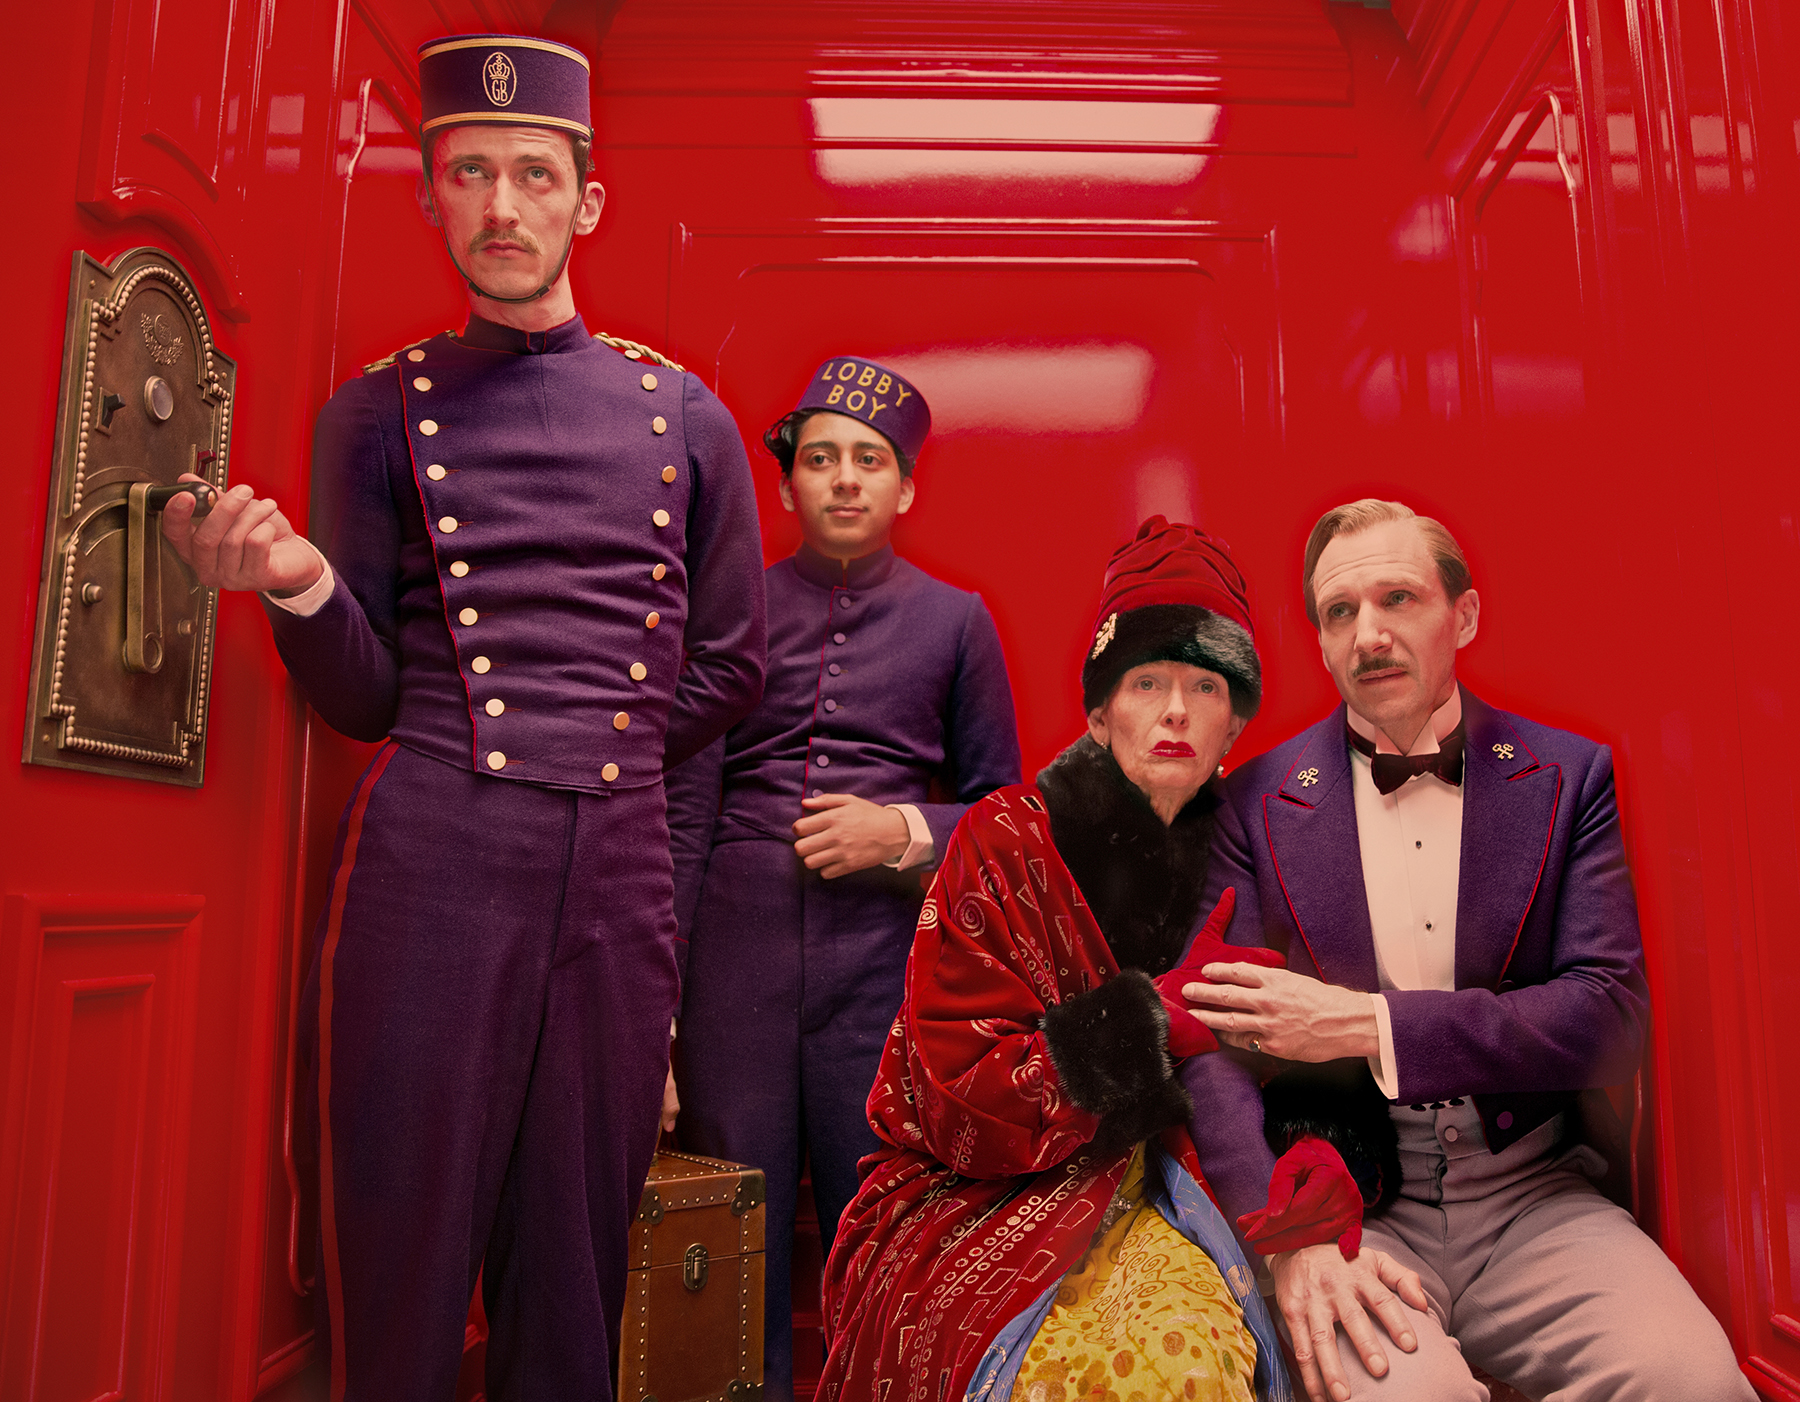 A scene from The Grand Budapest Hotel. (Credit: Fox Searchlight Pictures)